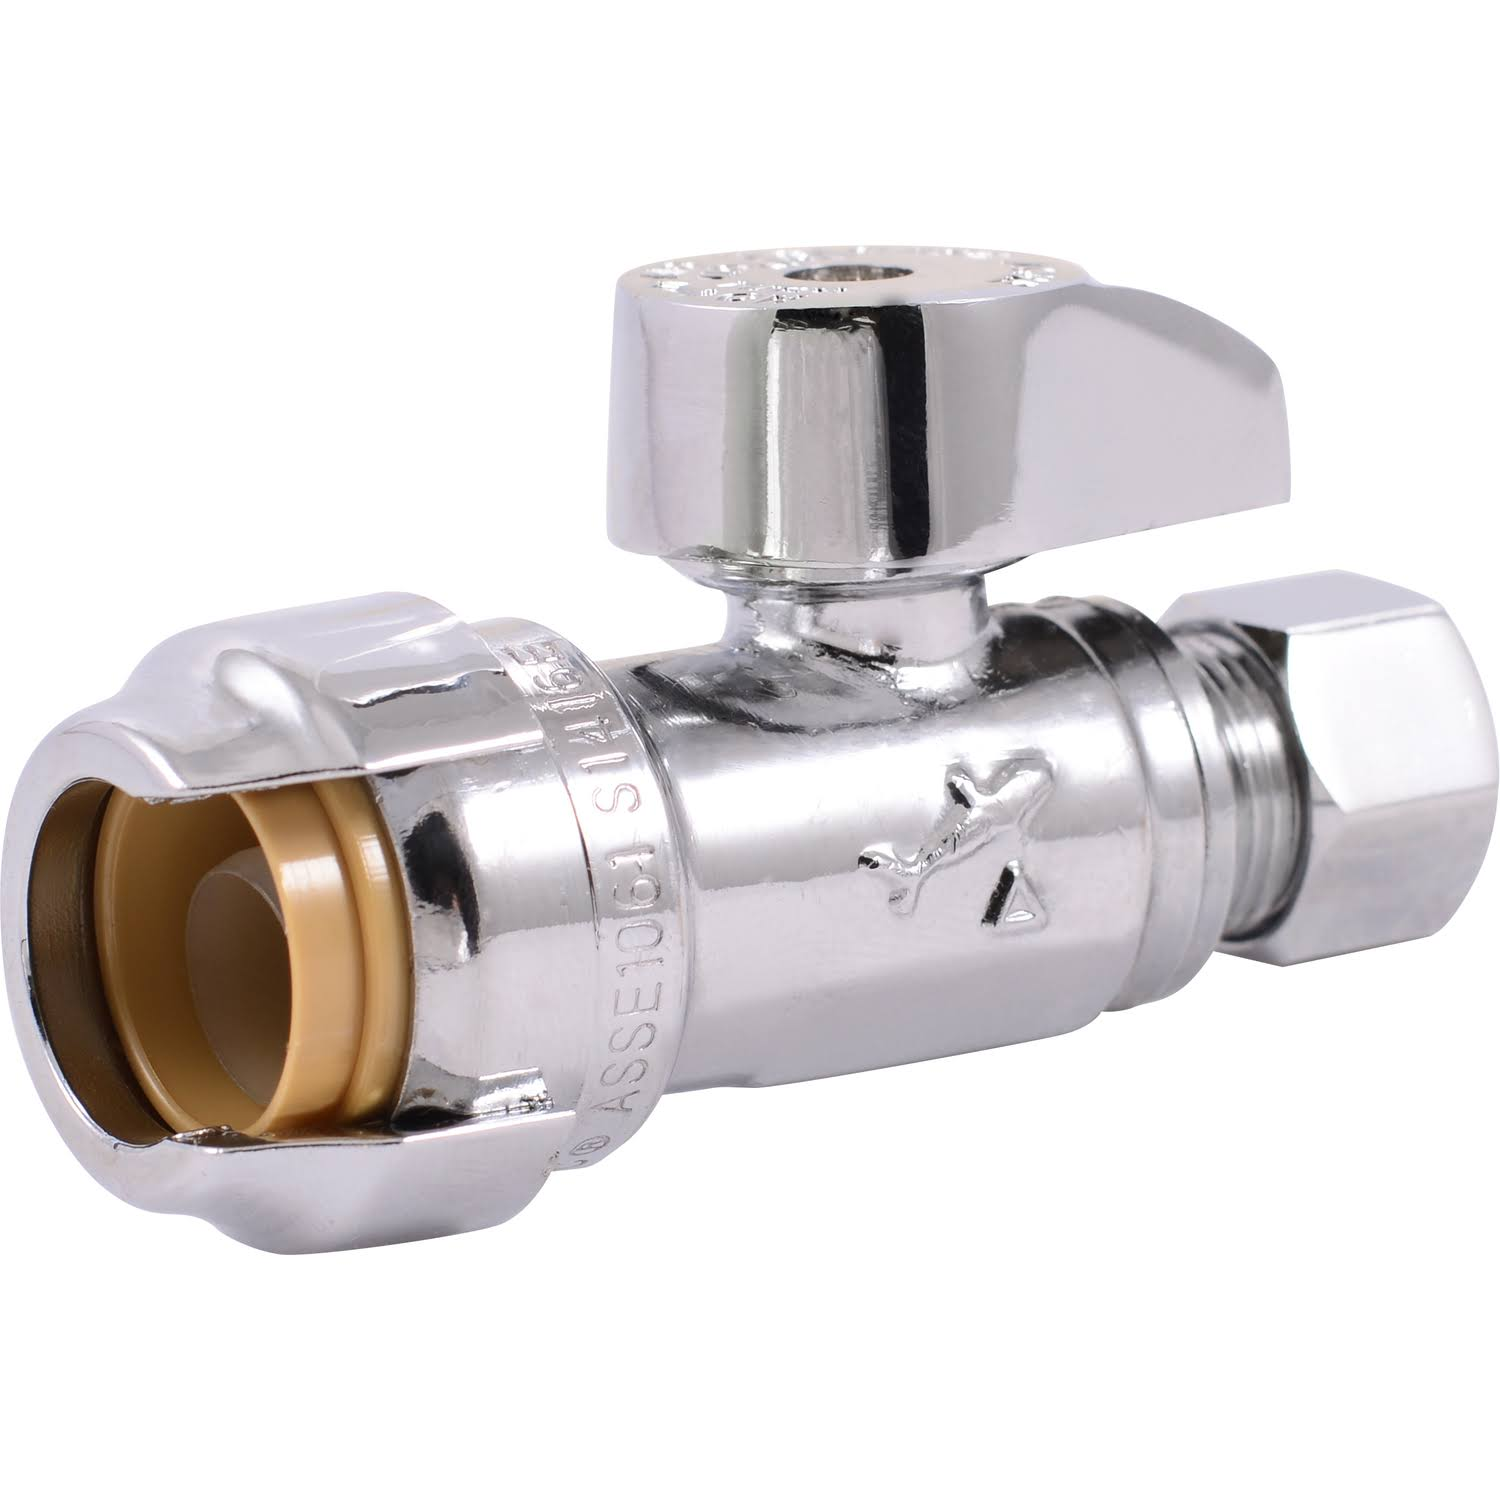 "SharkBite 23036LFA4 Compression Fitting Water Valve - 1/2"" x 3/8"""